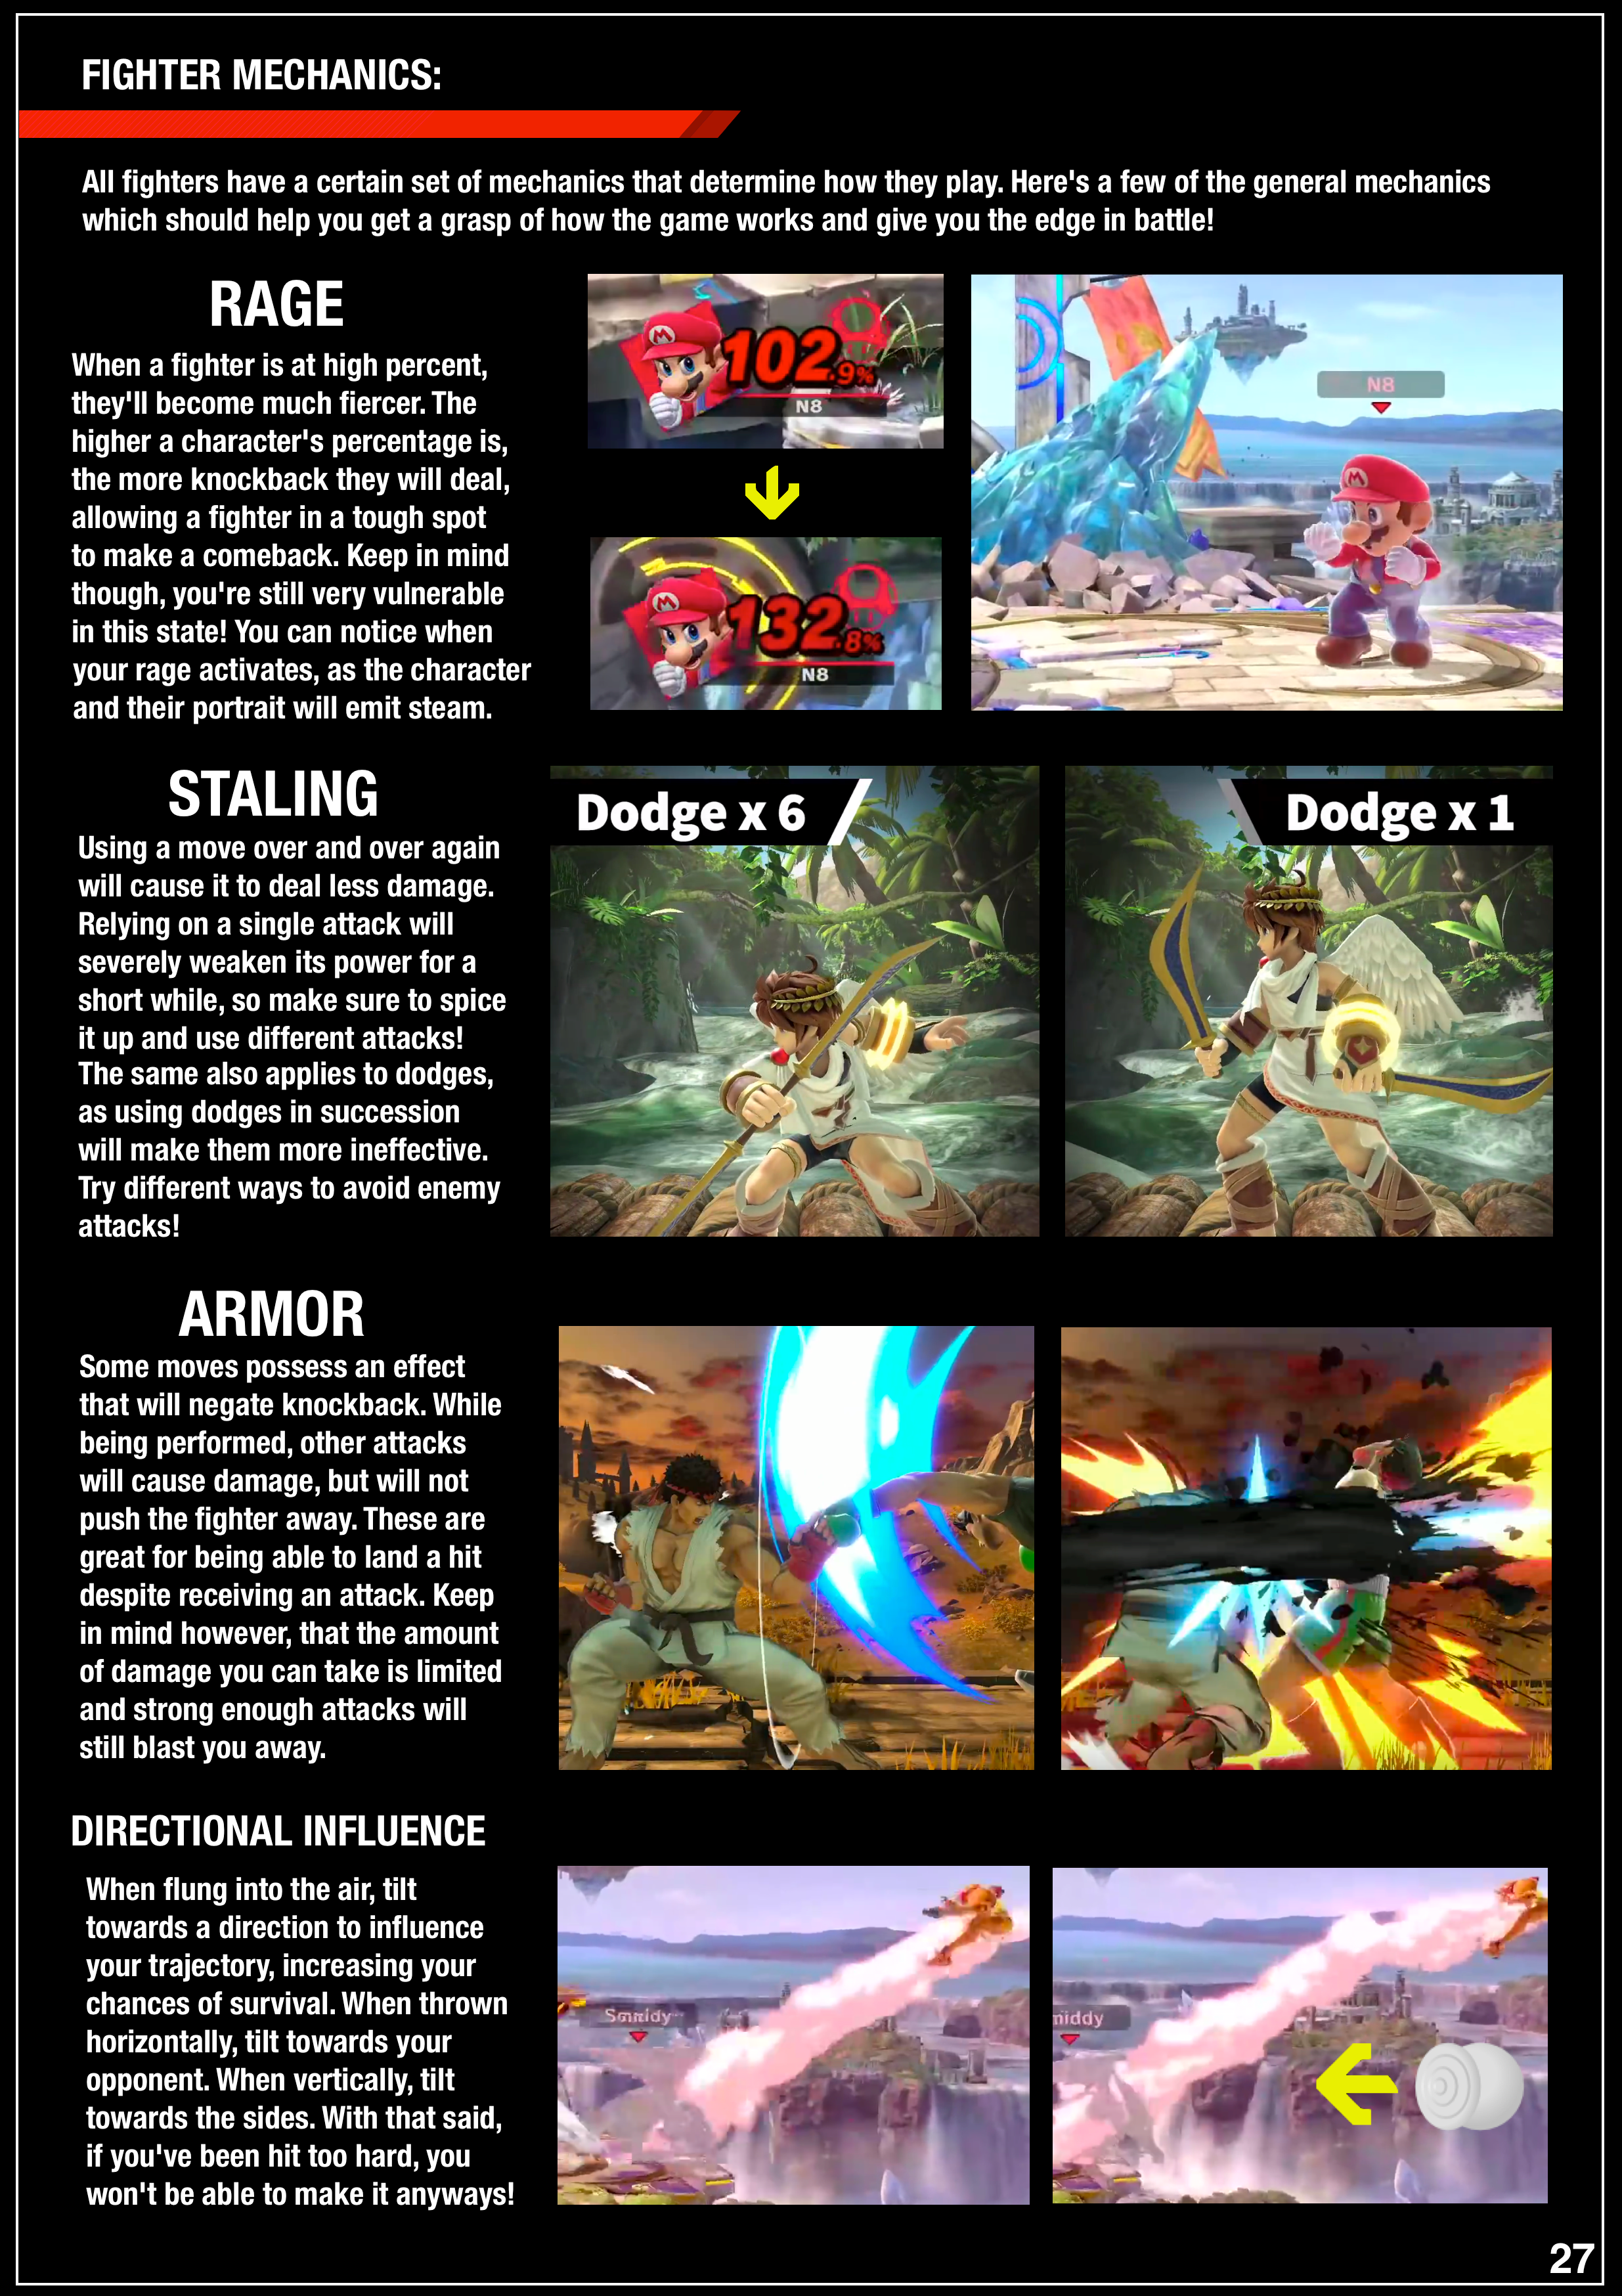 Fan-made Super Smash Bros. Ultimate manual 5 out of 6 image gallery